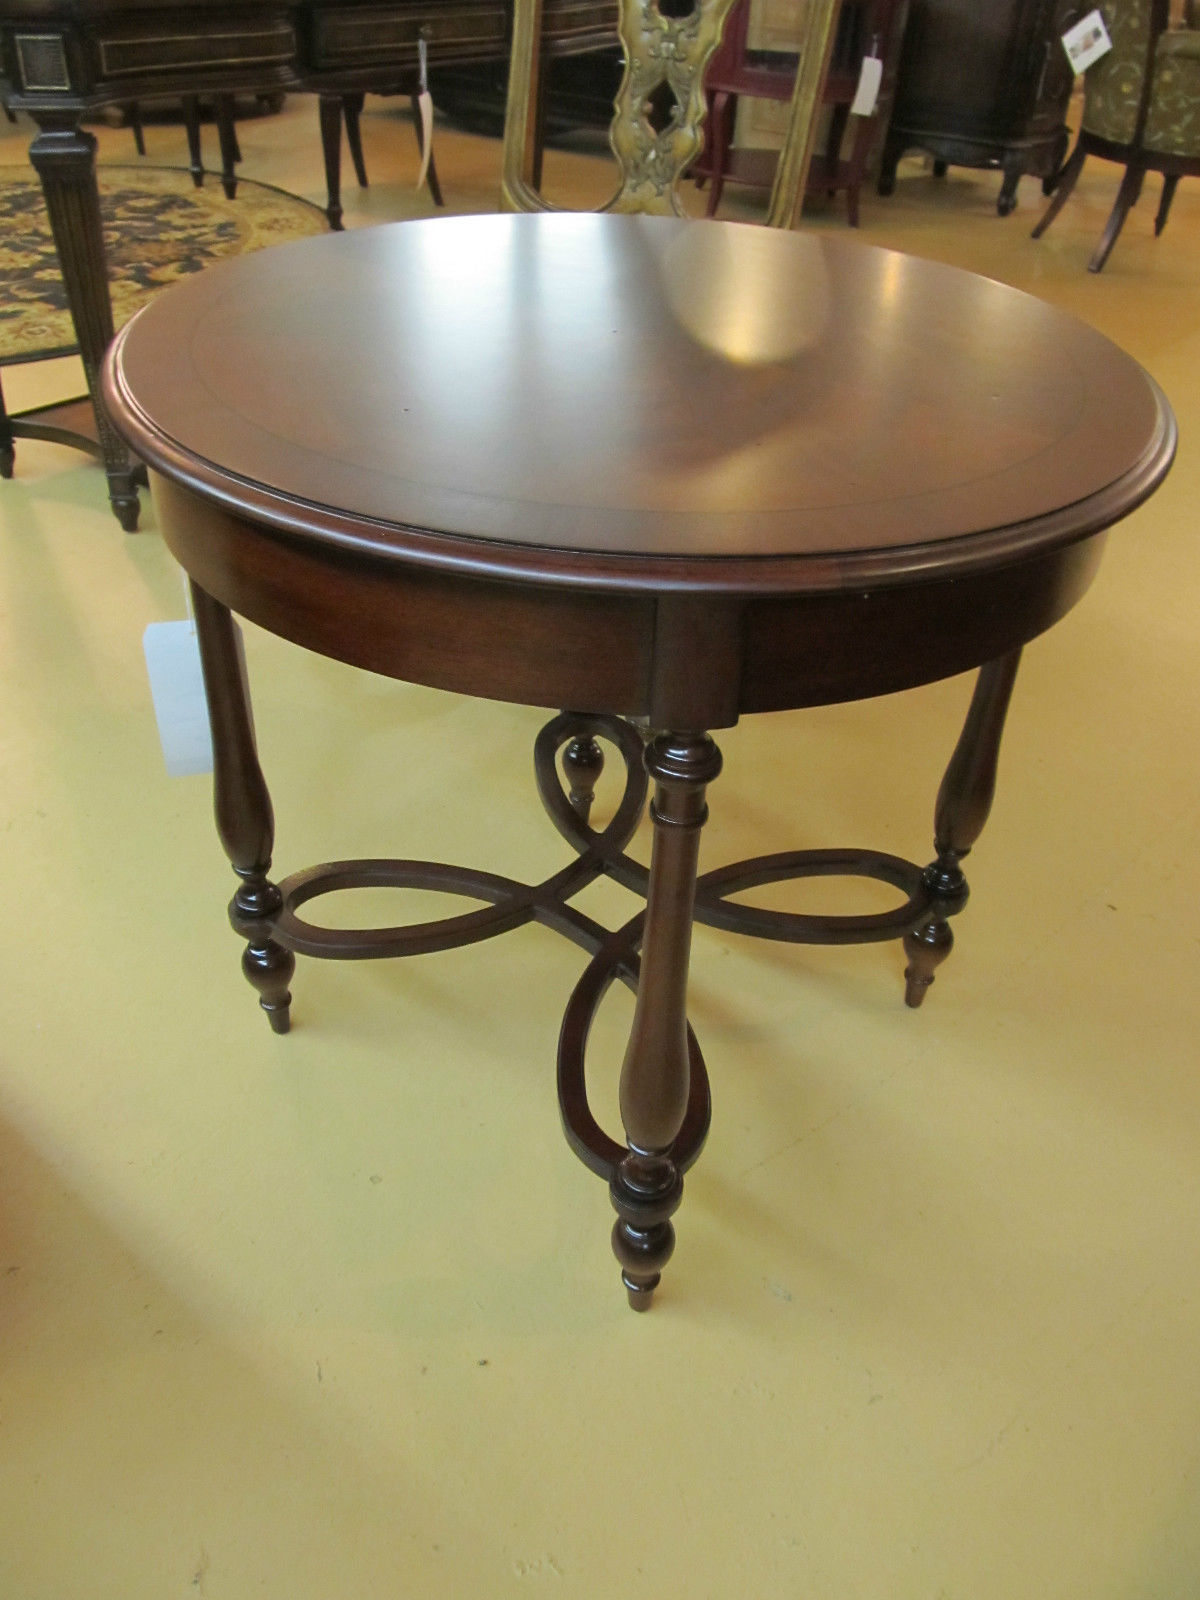 Drexel Heritage Adaptations Simpson Round Lamp End Table Nightstand 255-841